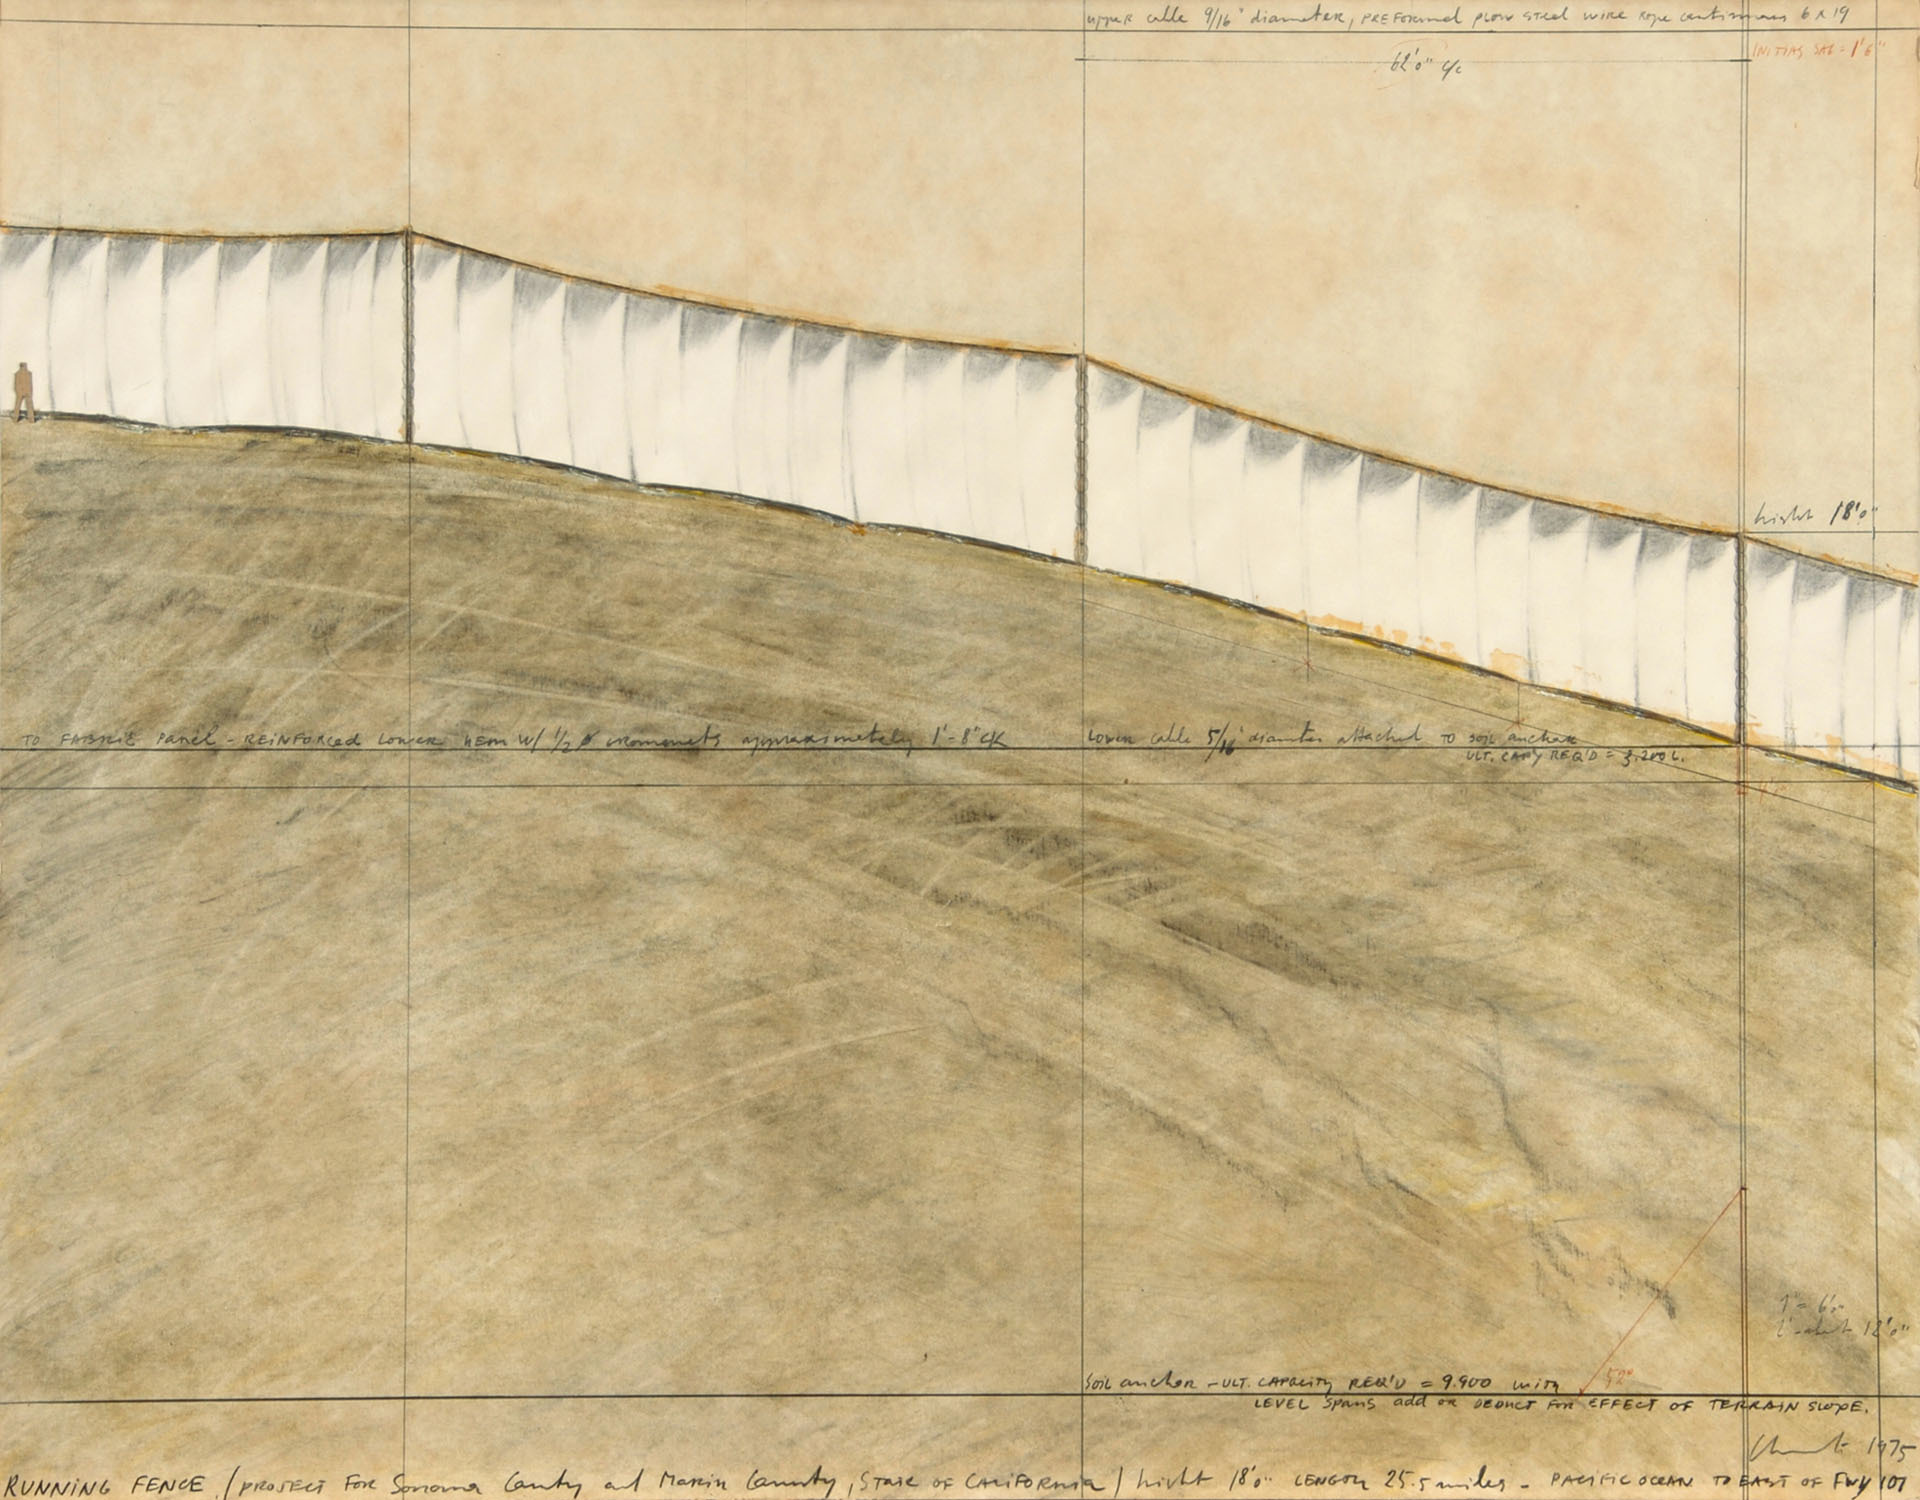 Christo, Running Fence (Project for Sonoma and Marin Counties, State of California)